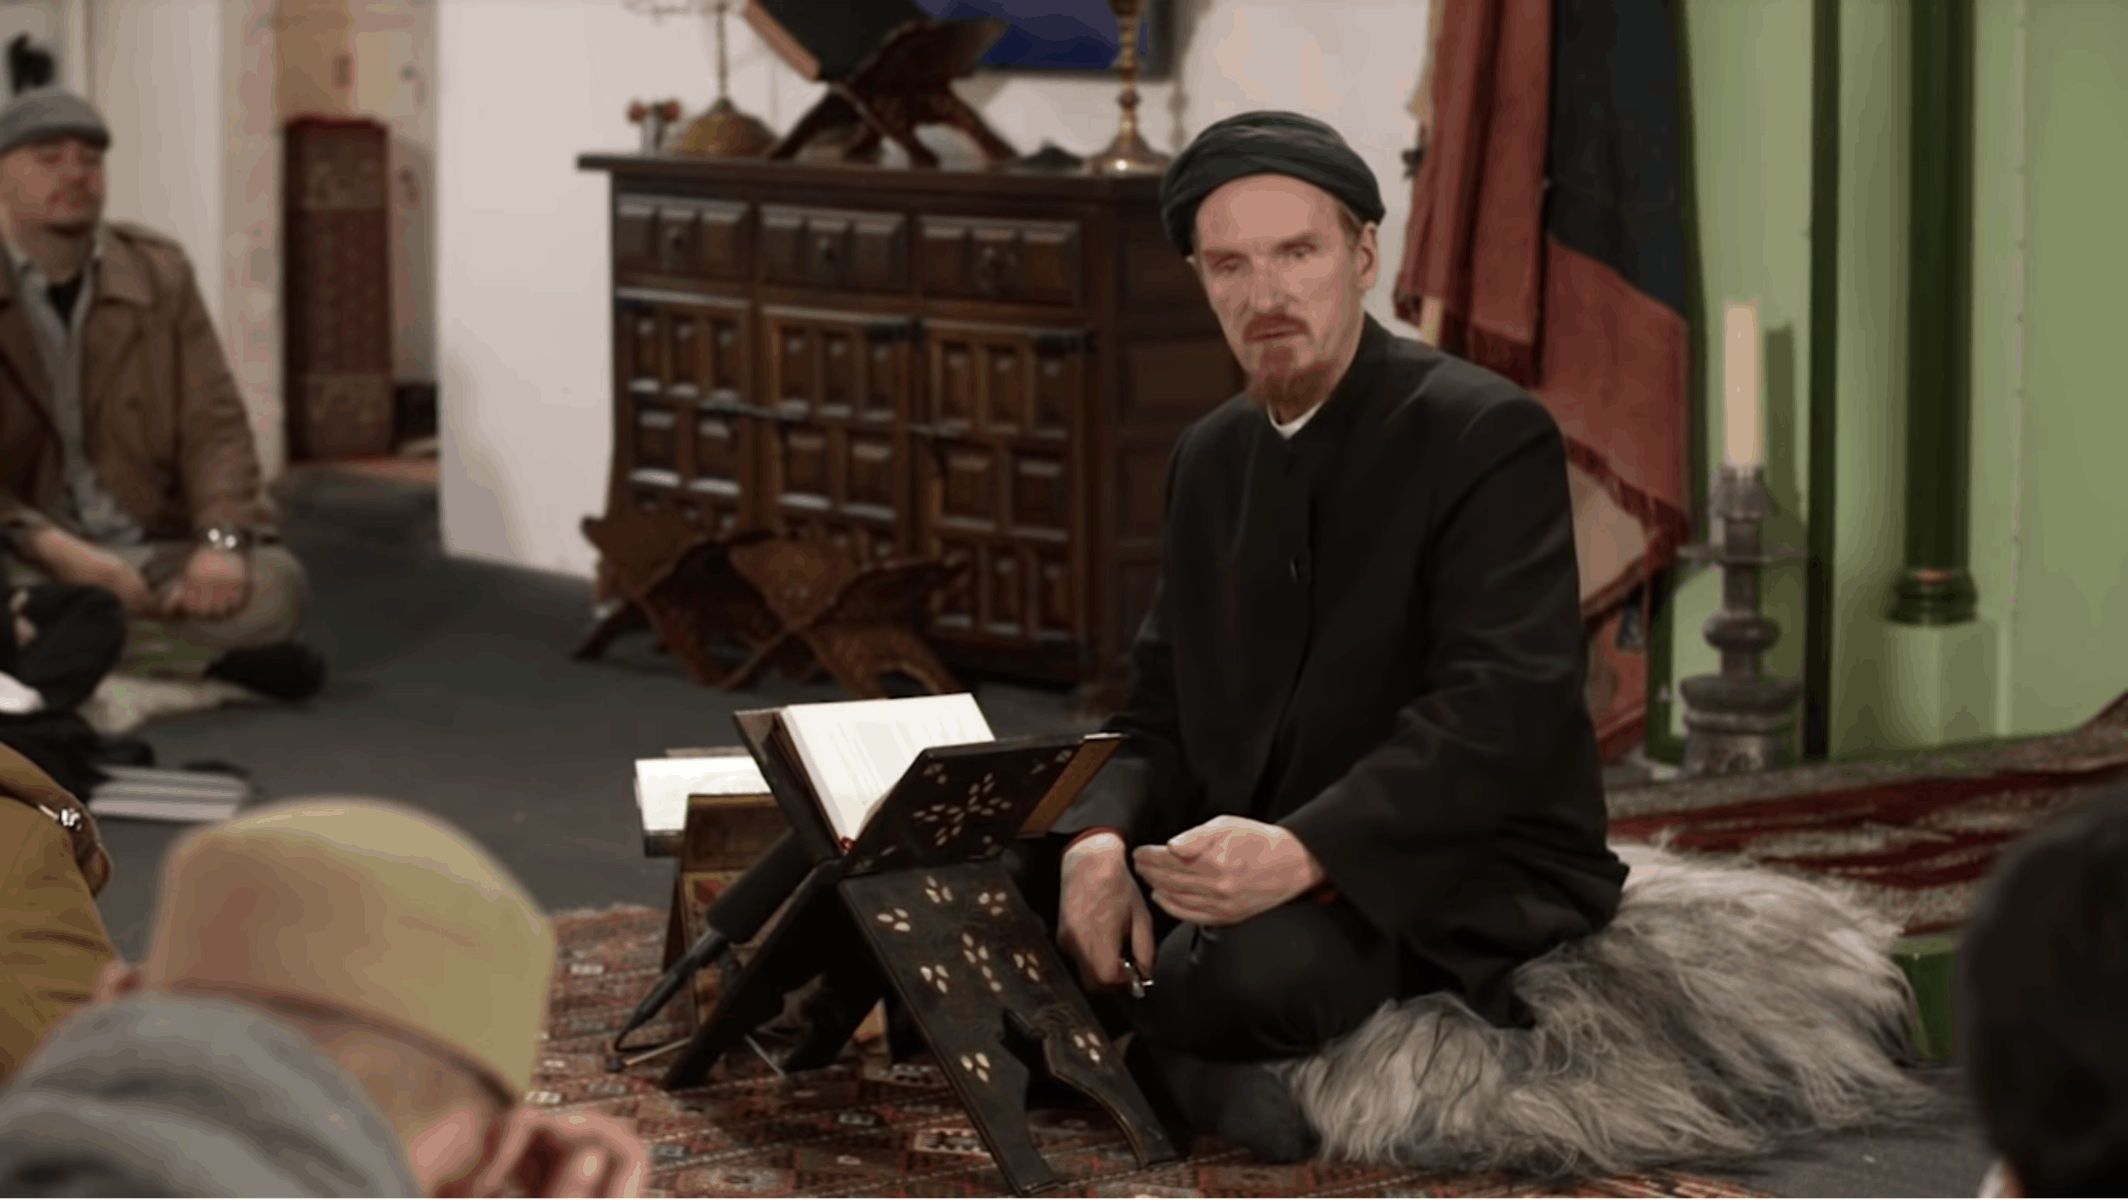 Abdal Hakim Murad – The Wise Man and the Serpent